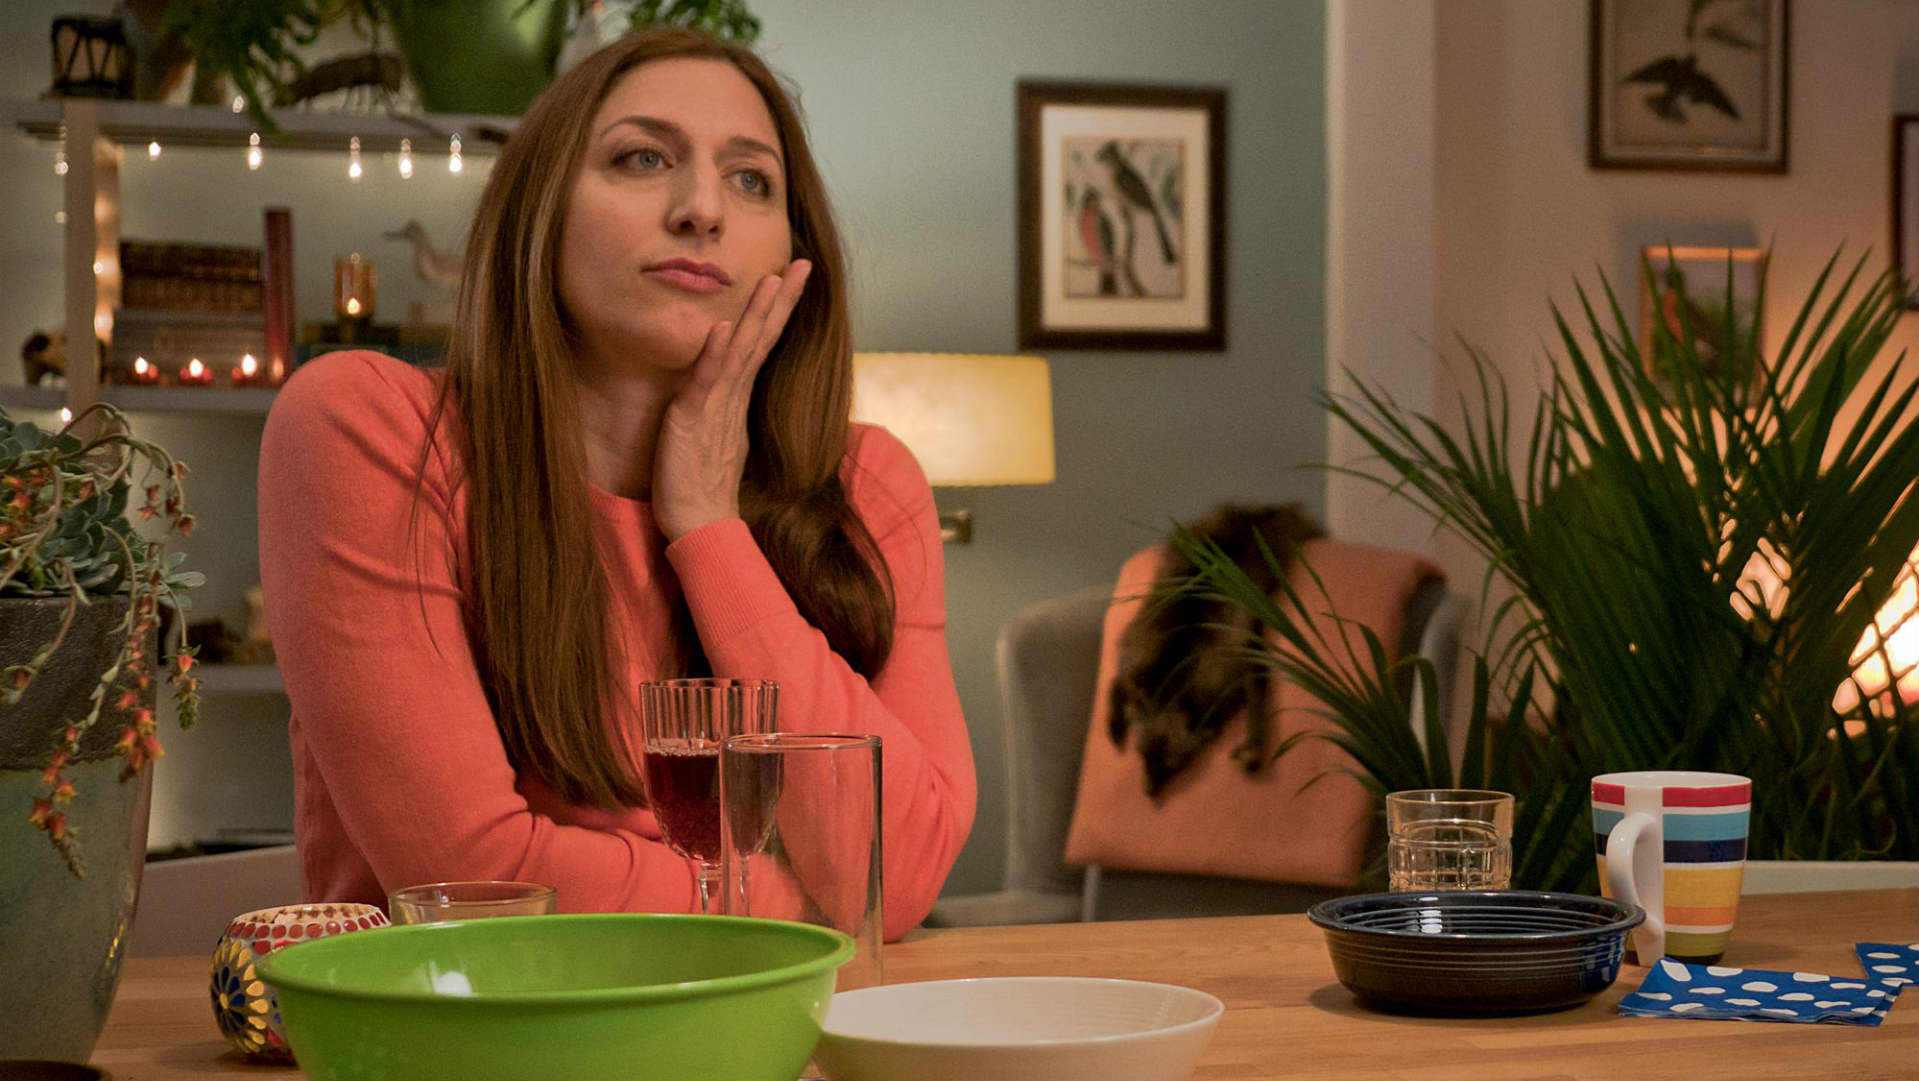 Spinster Review: A Pensive Anti-Rom-com